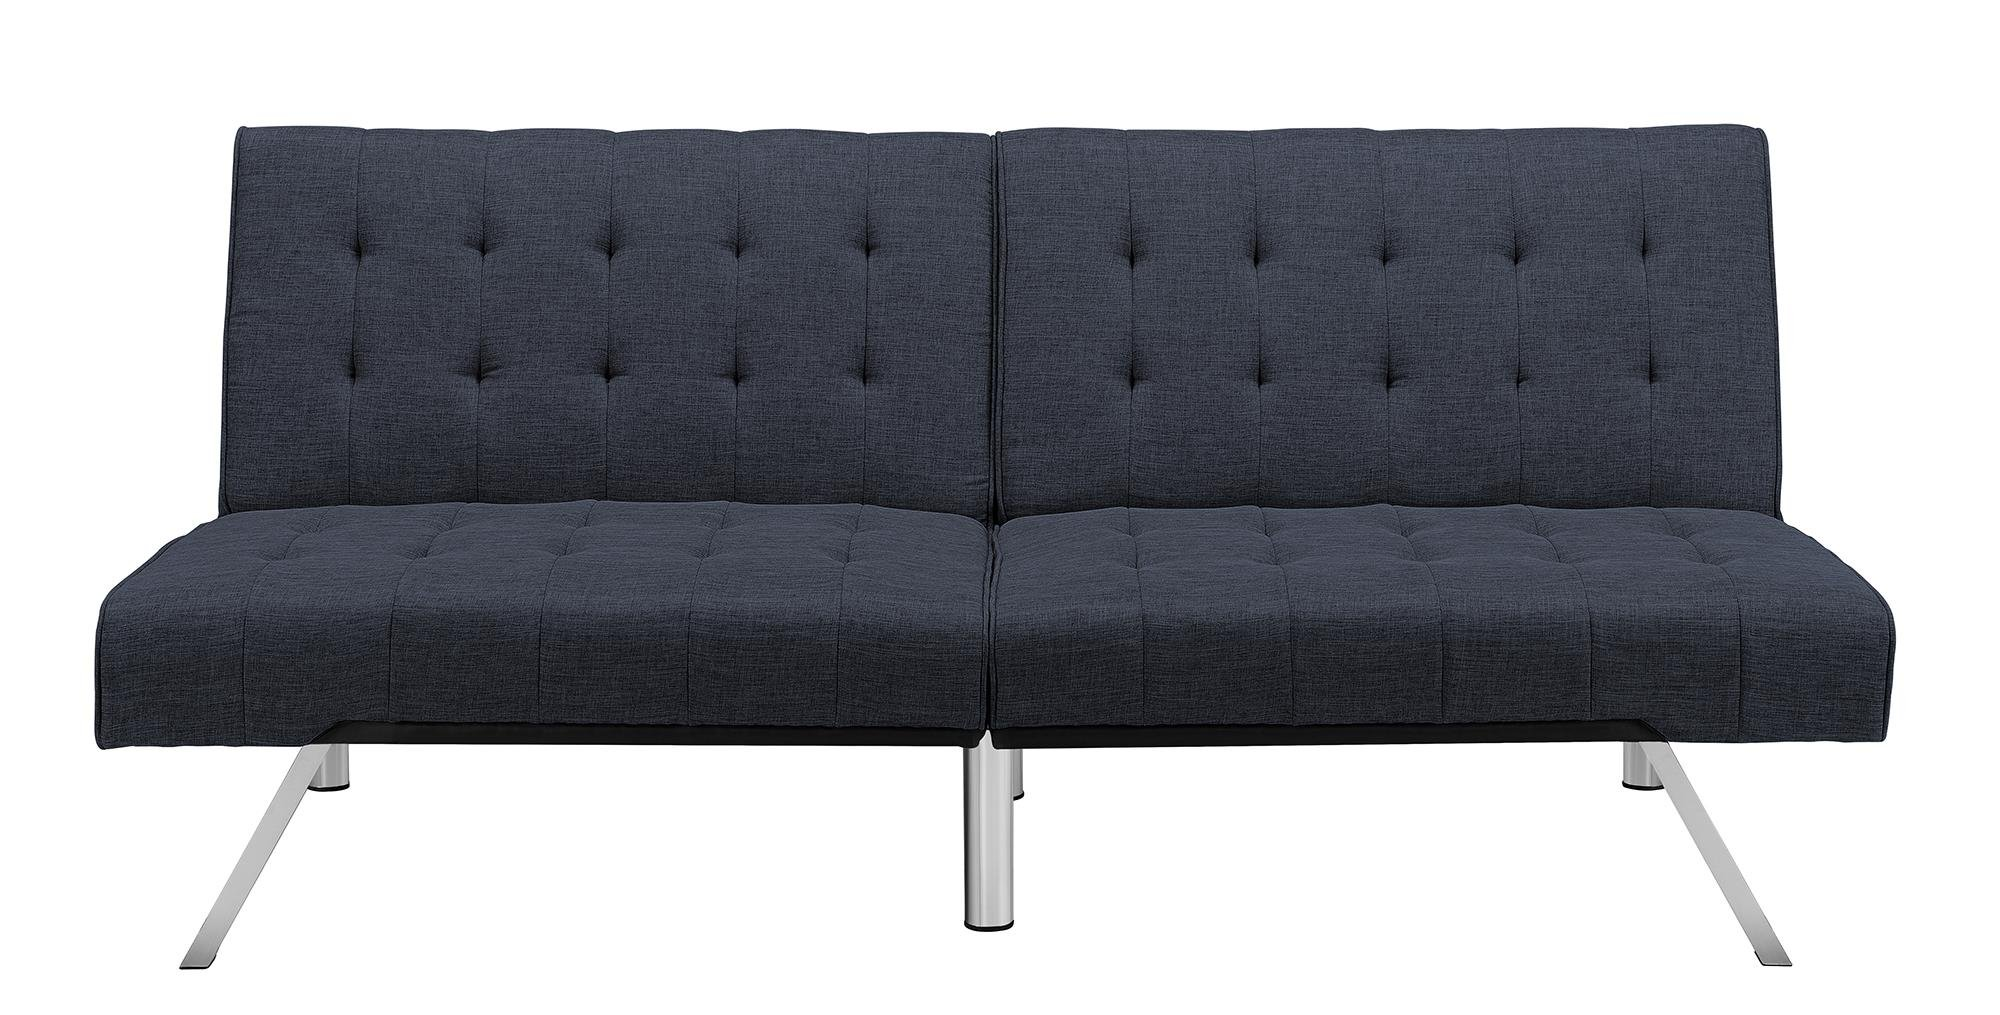 DHP Emily Futon Couch Bed Modern Sofa Design Includes Sturdy Chrome